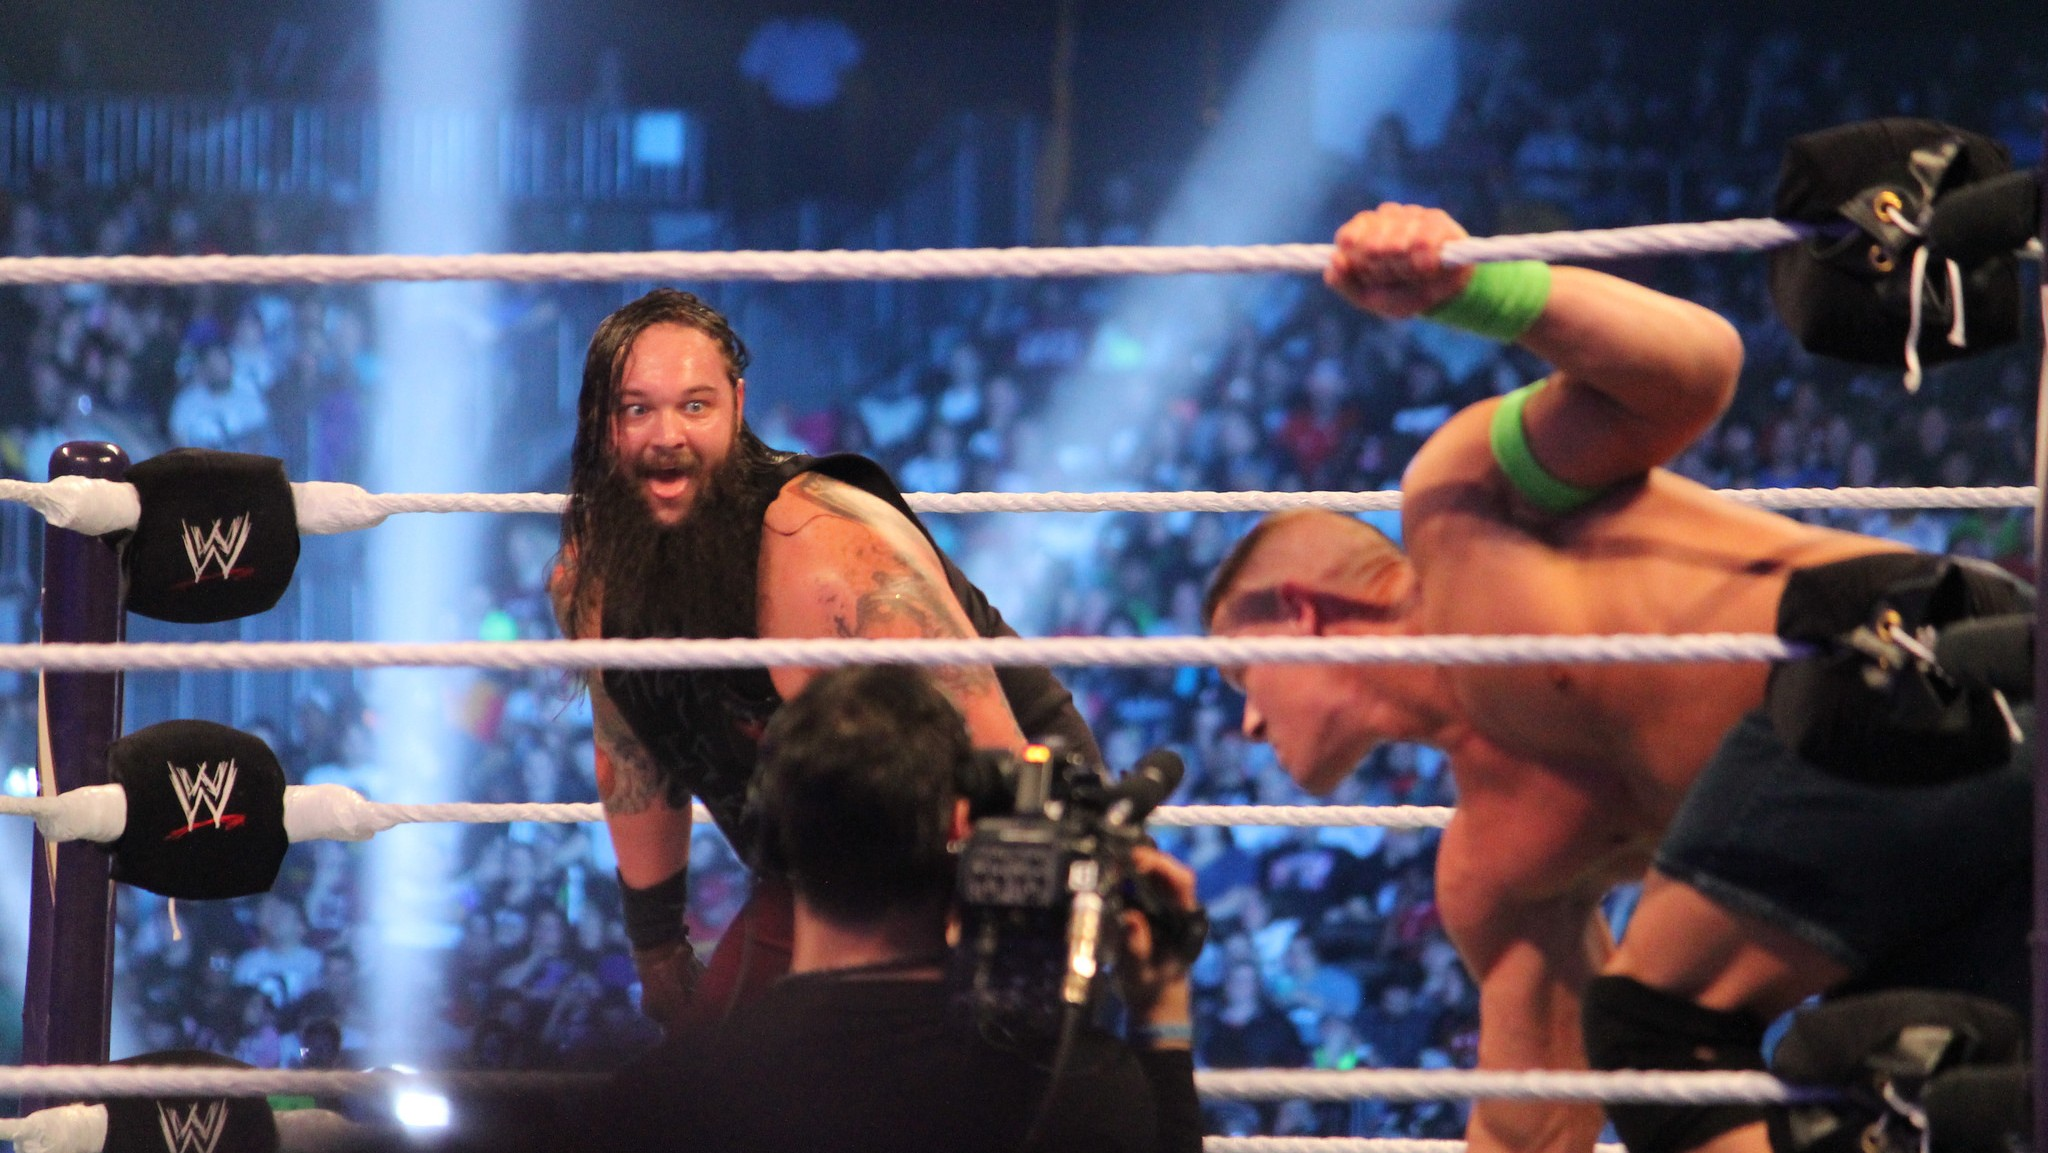 Not Just Another Bad Guy: Bray Wyatt and WWE's Occult Heel